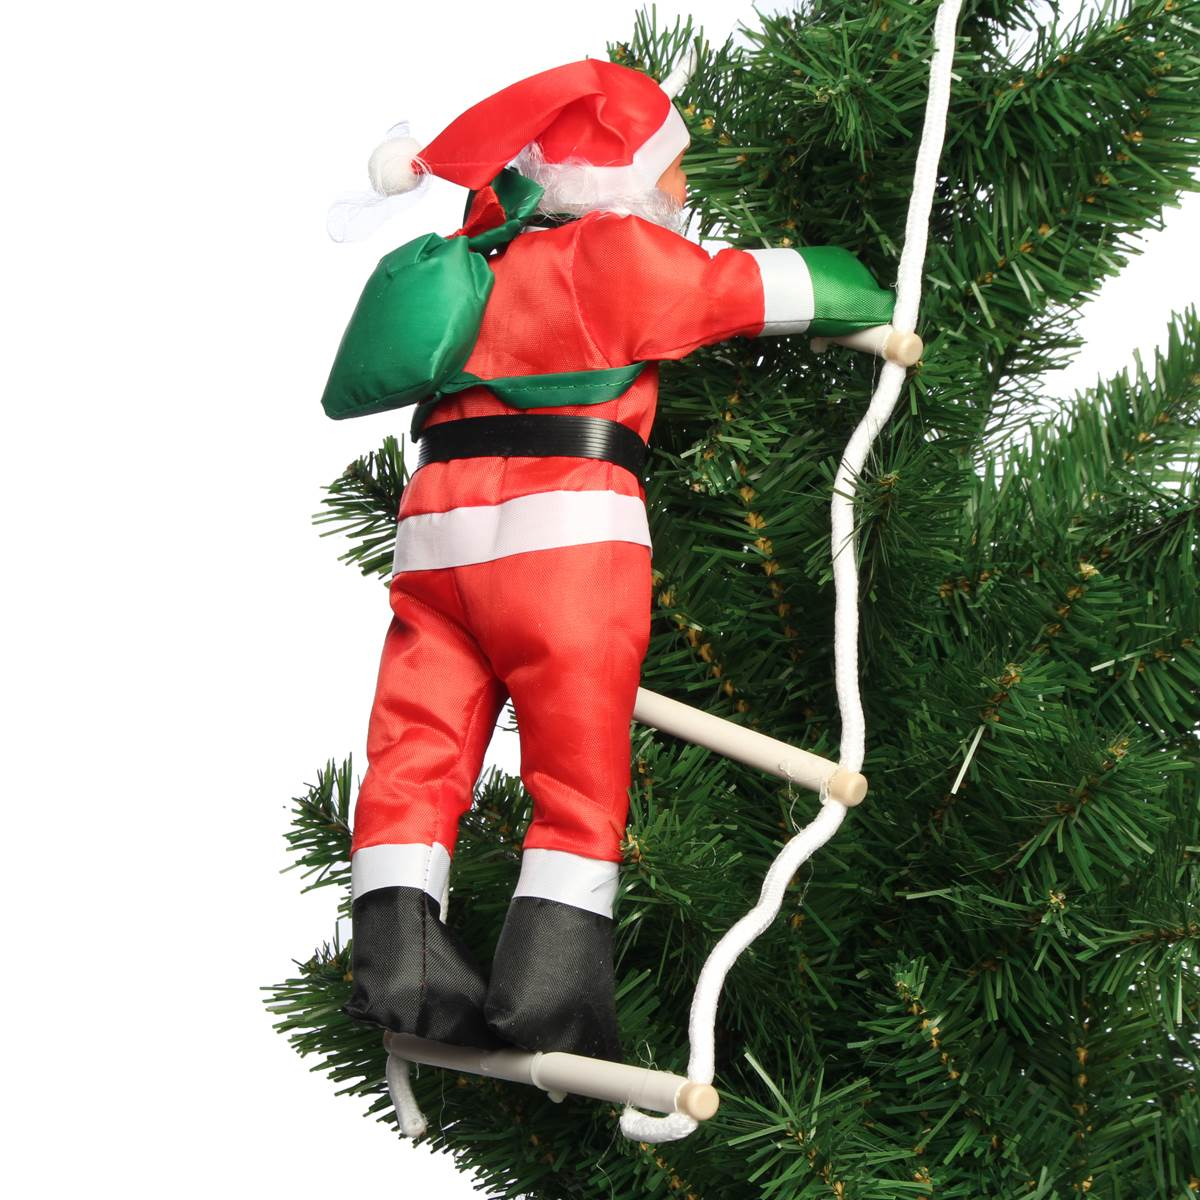 pendant climbing gifts ladder drop in outdoor new item rope tree with santa claus decor decorations for ornaments mall feliz christmas navidad from home year